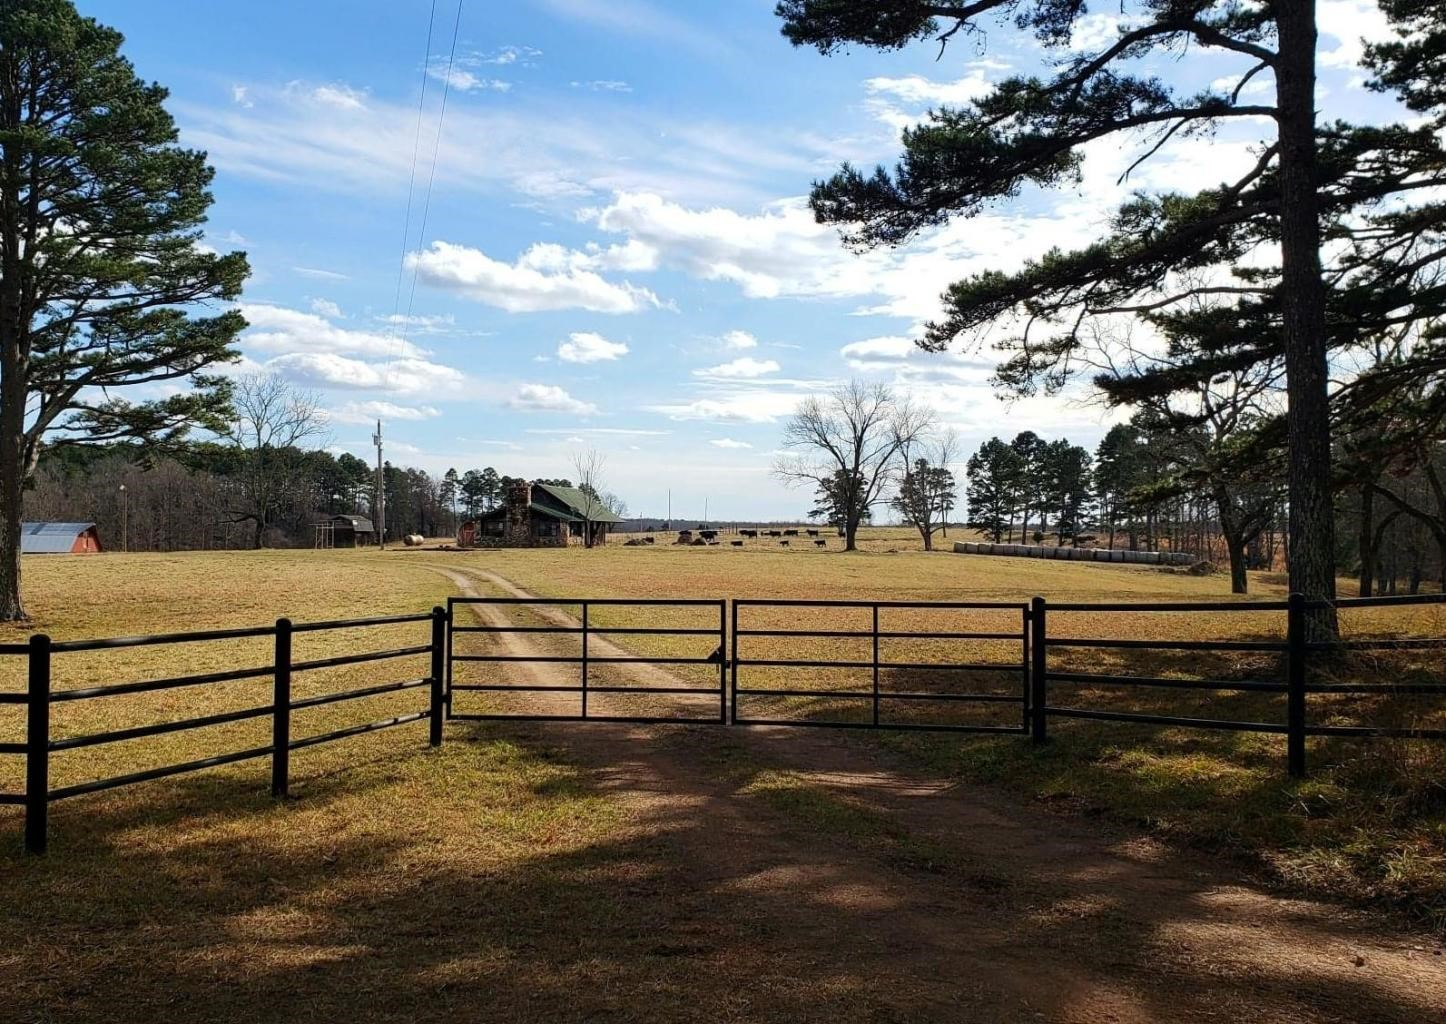 Southern Missouri Farm For Sale - Bordering National Forest